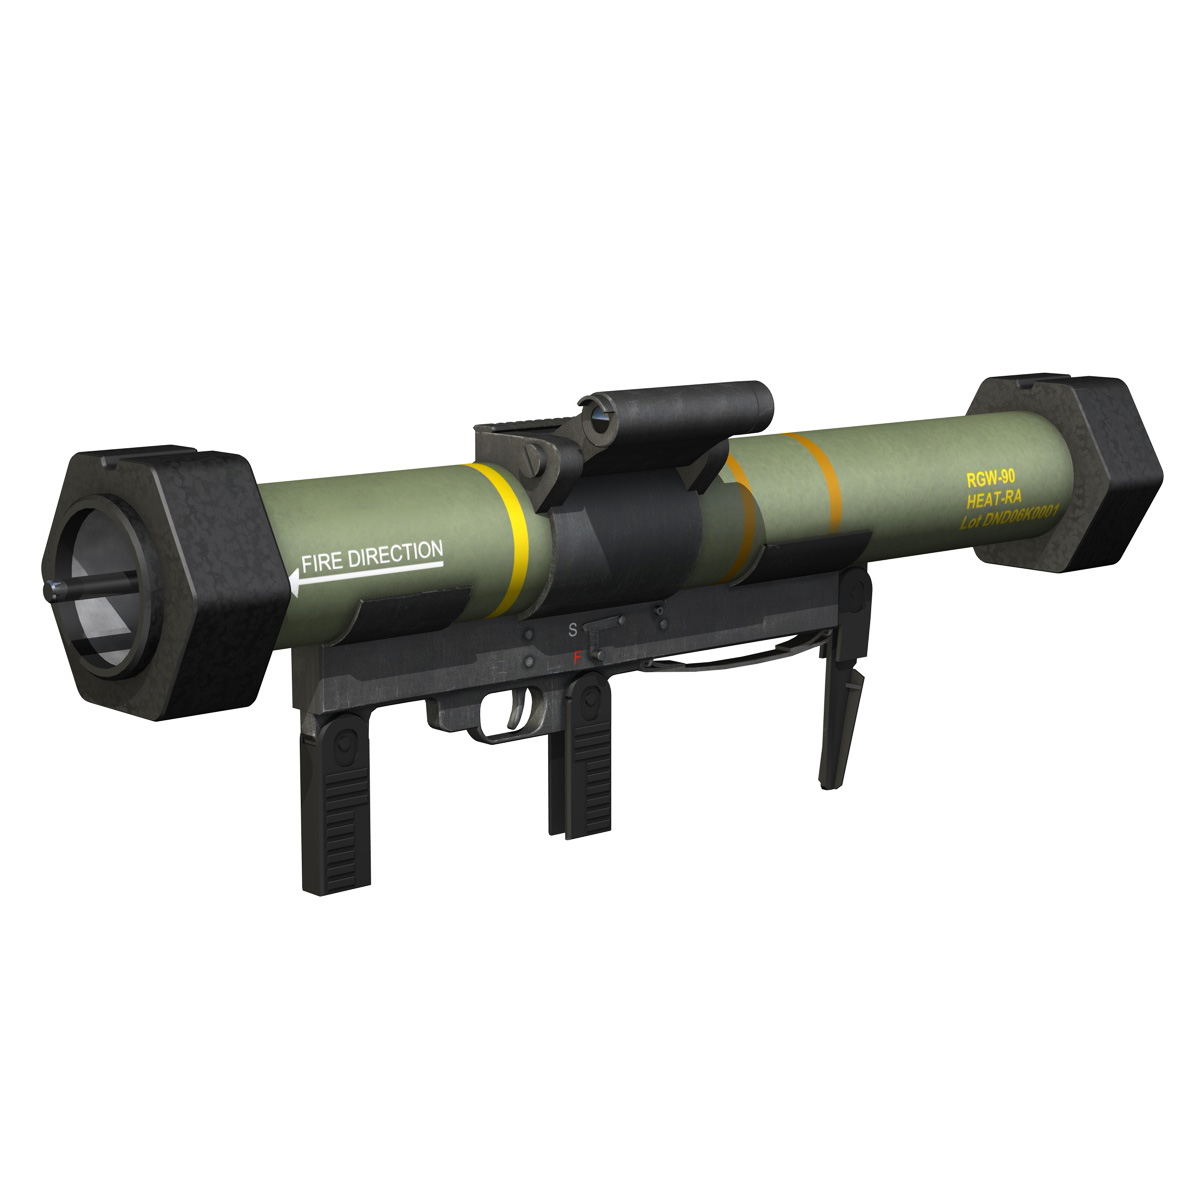 anti-armor launcher matador 3d model 3ds fbx c4d lwo obj 197074